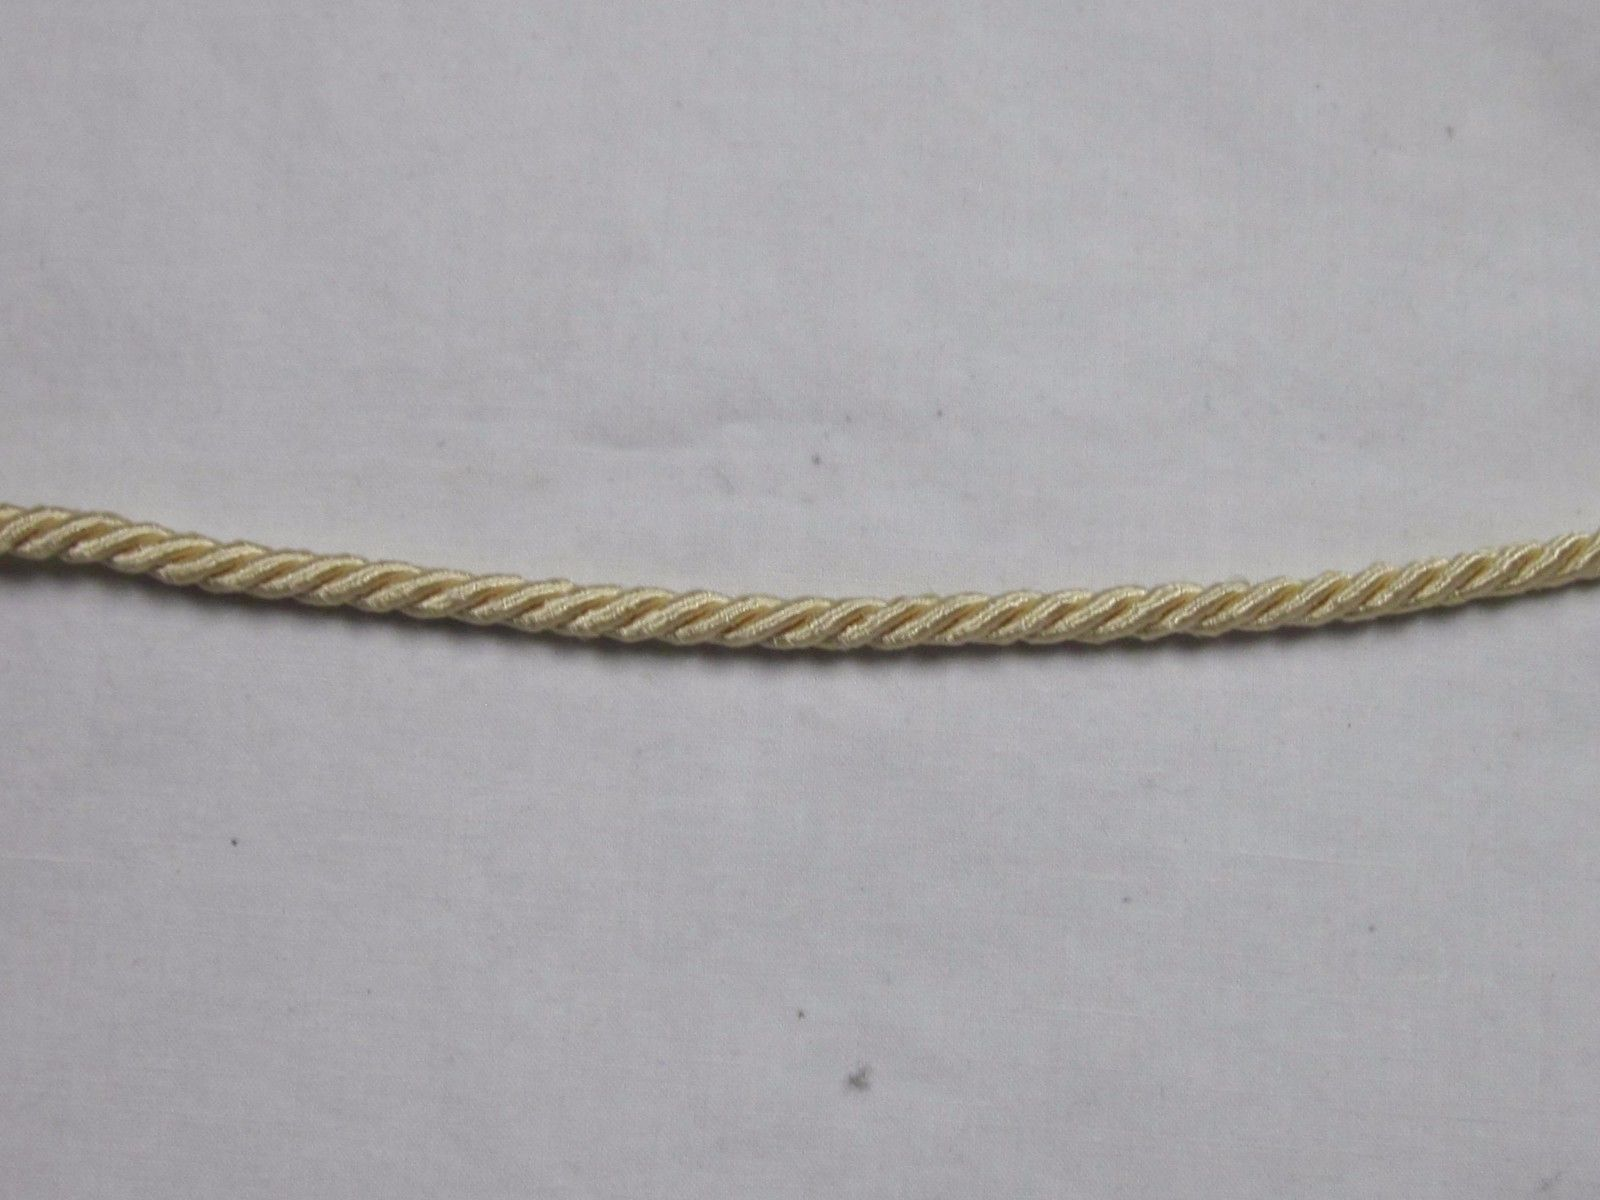 Wright Products Simplicity Chinese Gimp Braided Trim .5 X12yd-Navy